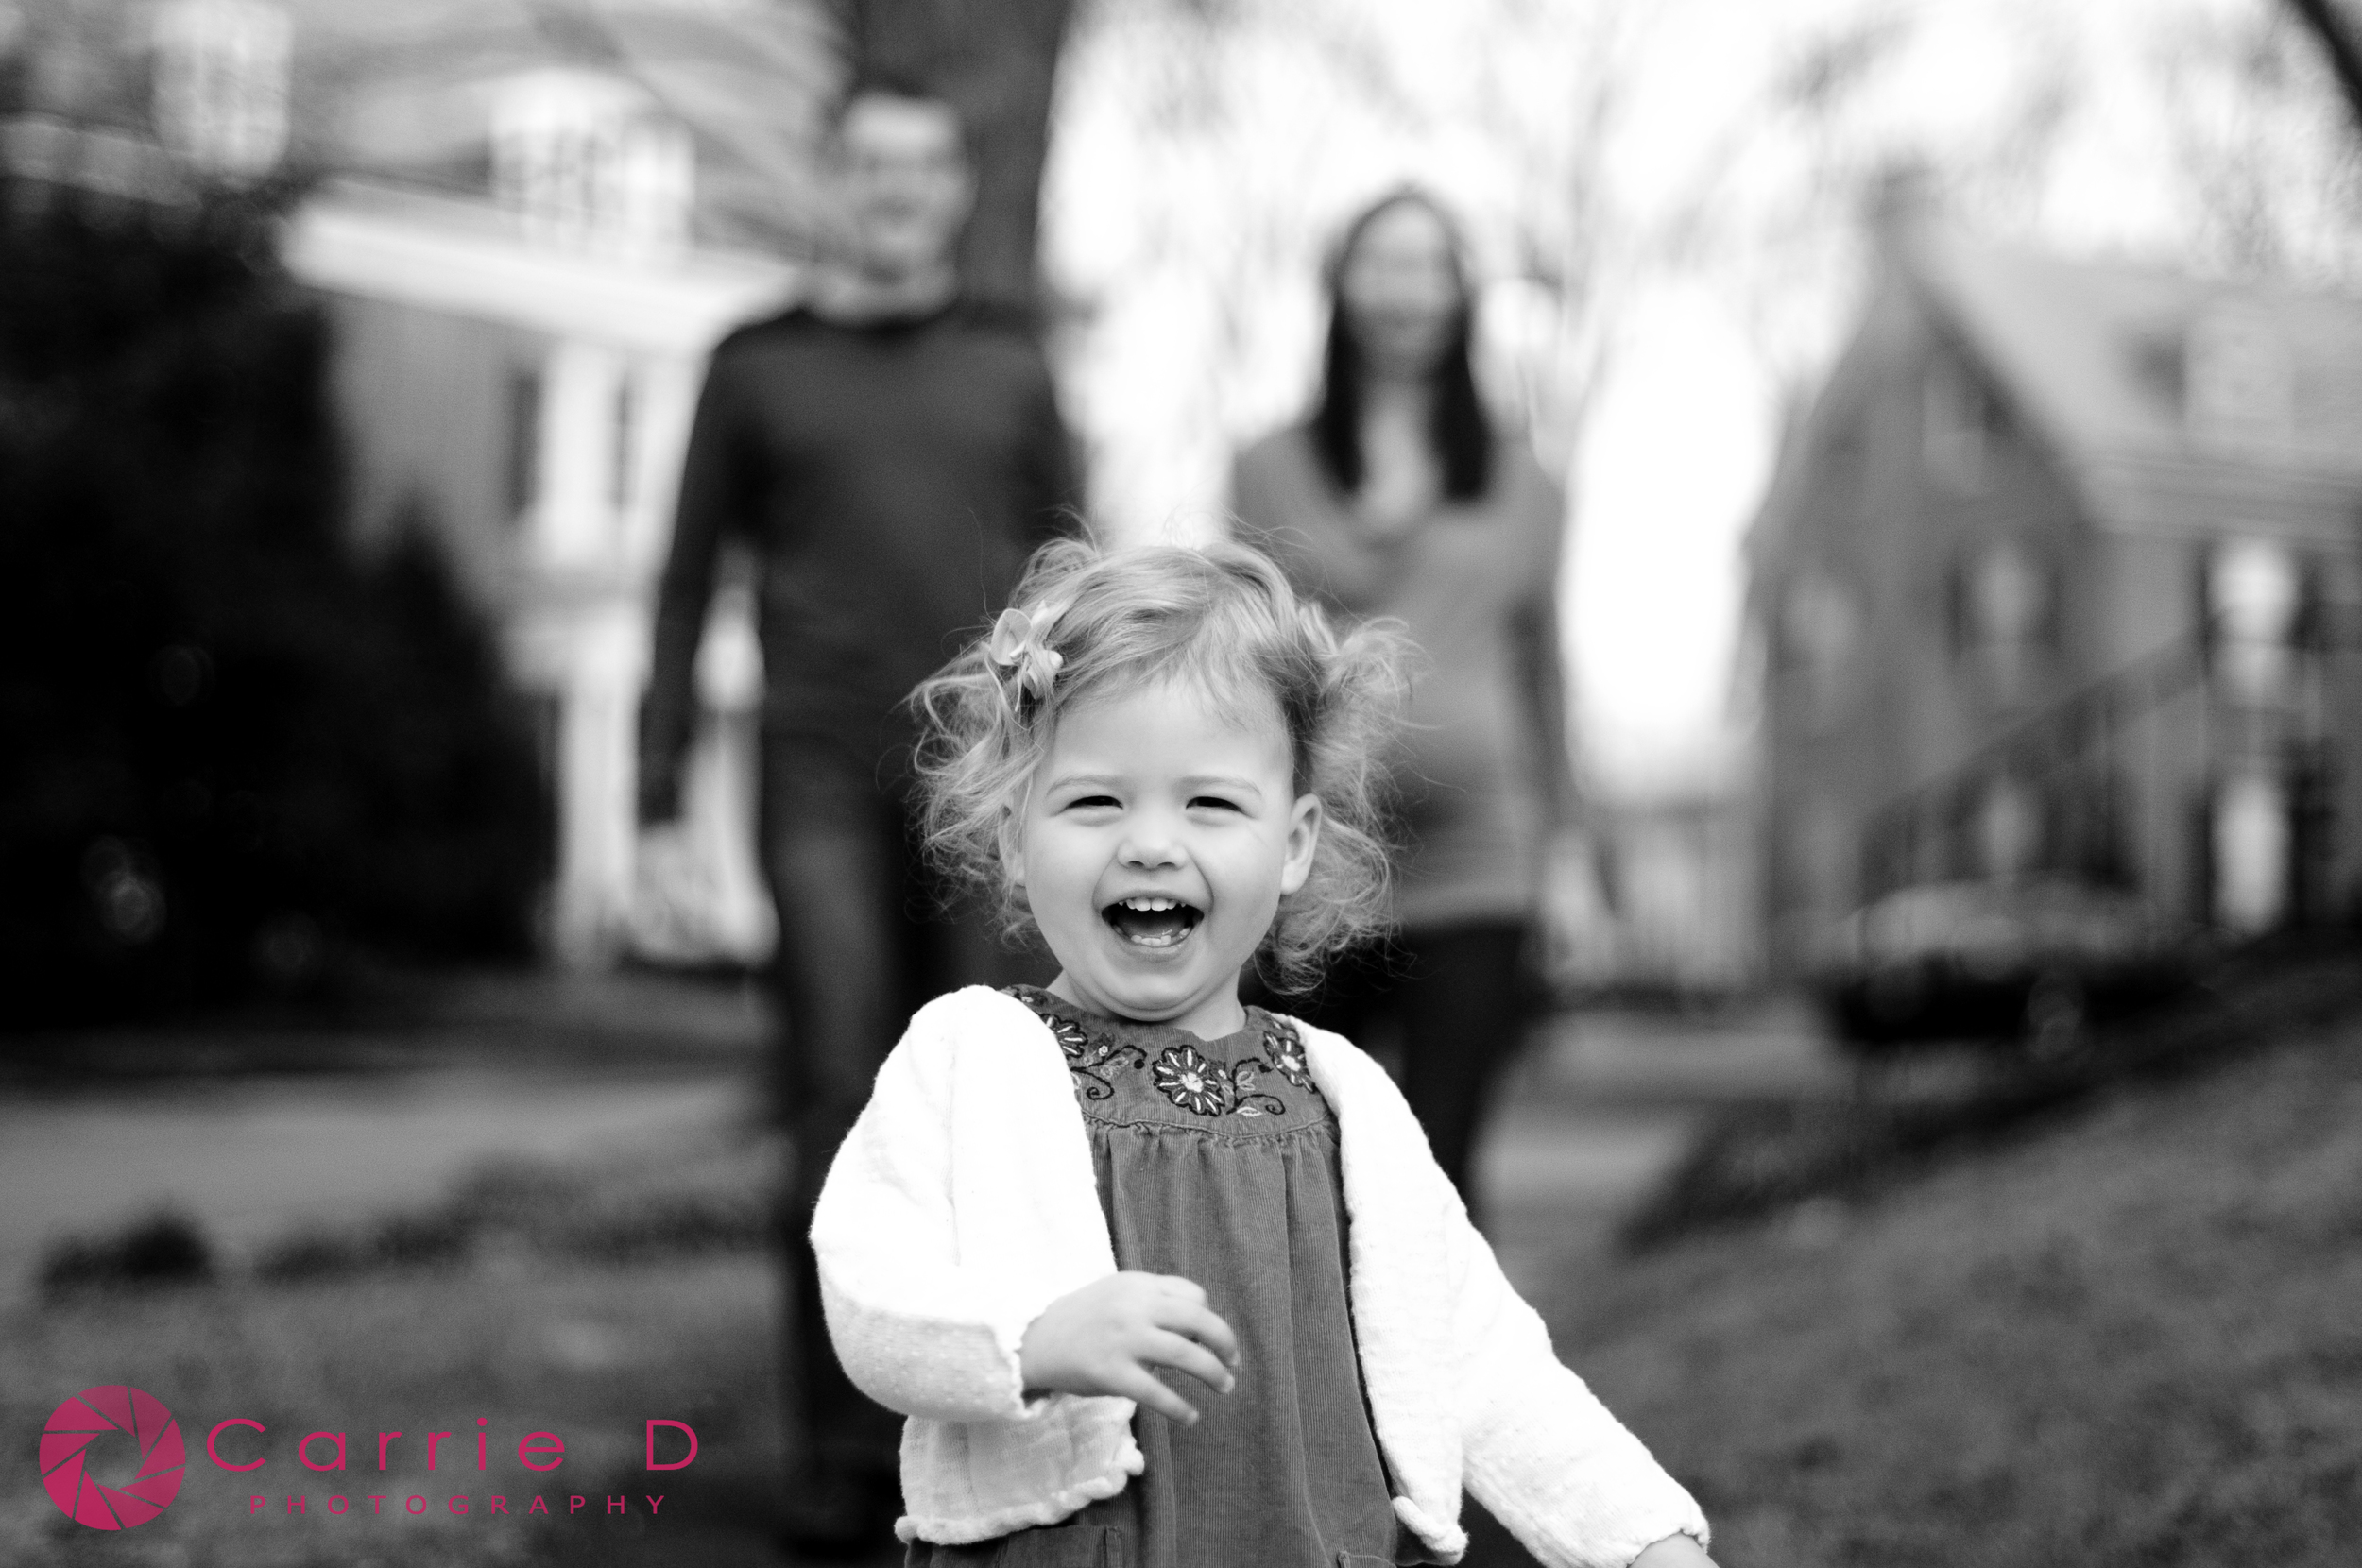 Baltimore Child Photographer - Baltimore Natural Light Photographer - Baltimore Family Photographer - Baltimore Natural Light Family Photographer - Baltimore Natural Light Child Photographer - Natural Light Photography - Two year old Photos - Baltimore Portrait Photographer - Natural Light Portrait Photography